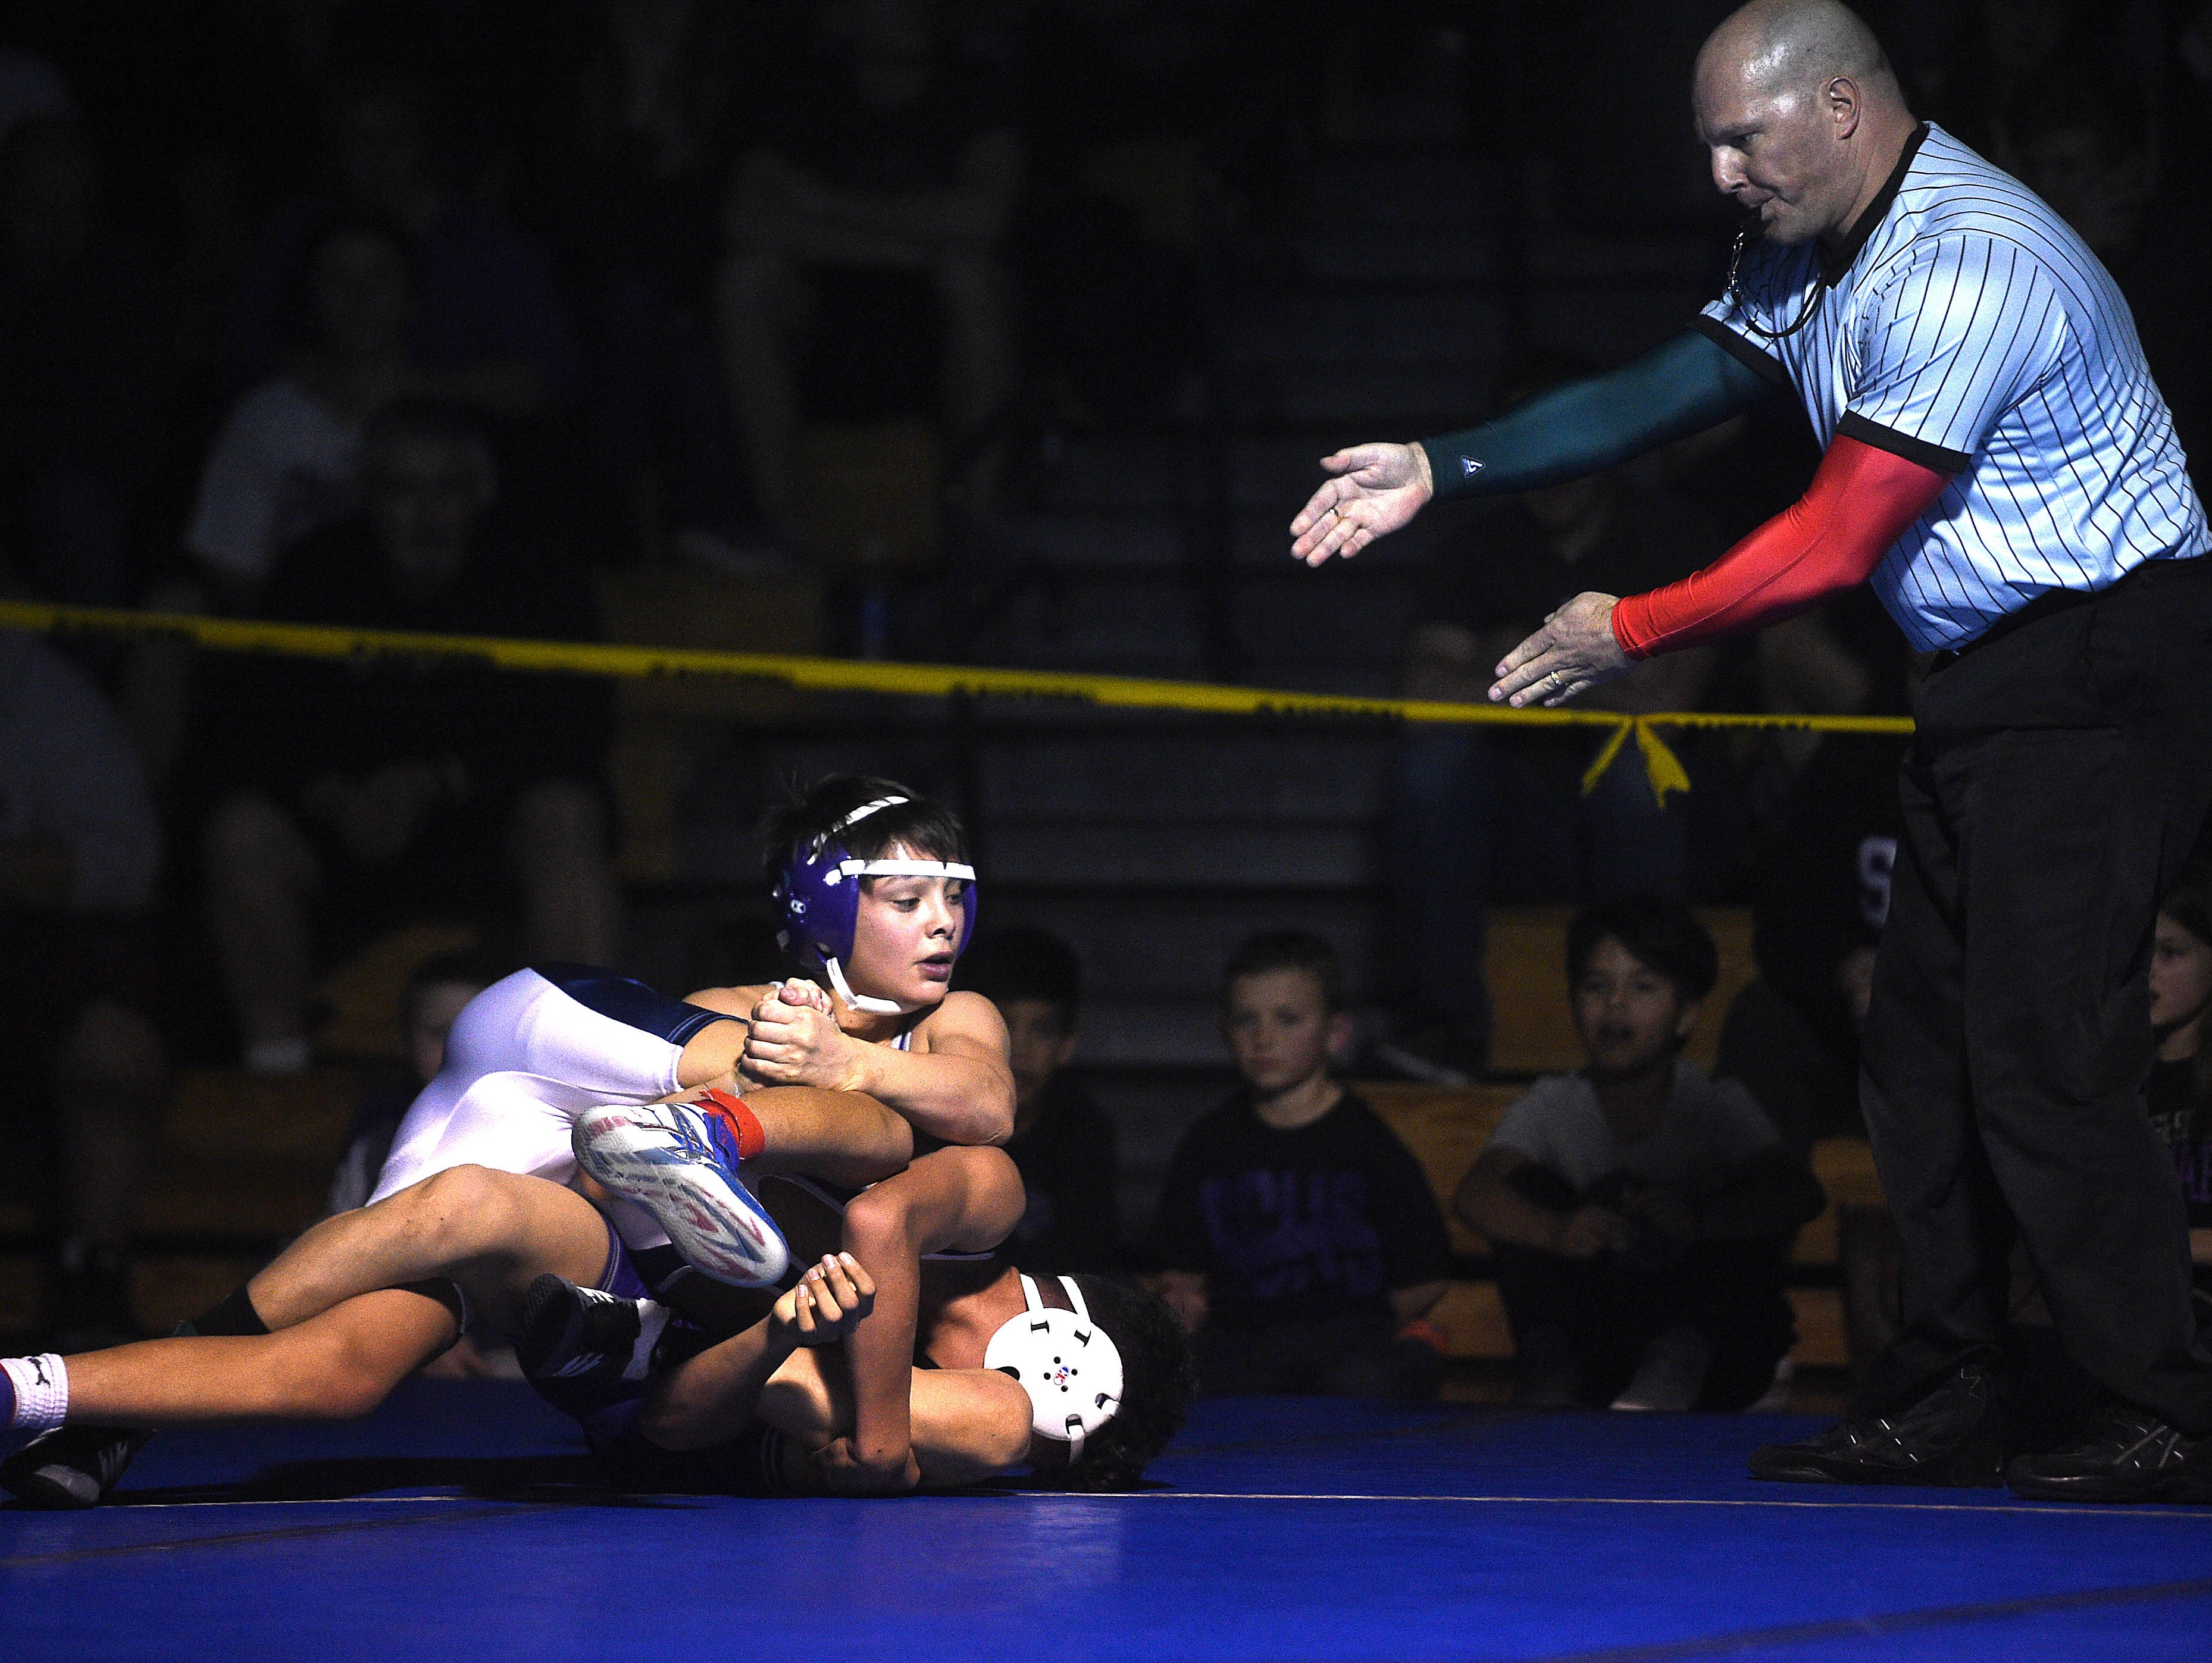 Spanish Springs' Anthony Sisson, top, defeats Reno's Eric Lopez to win the 106 pound division during the 4A Northern Region Wrestling championships at Reno High School on Saturday.